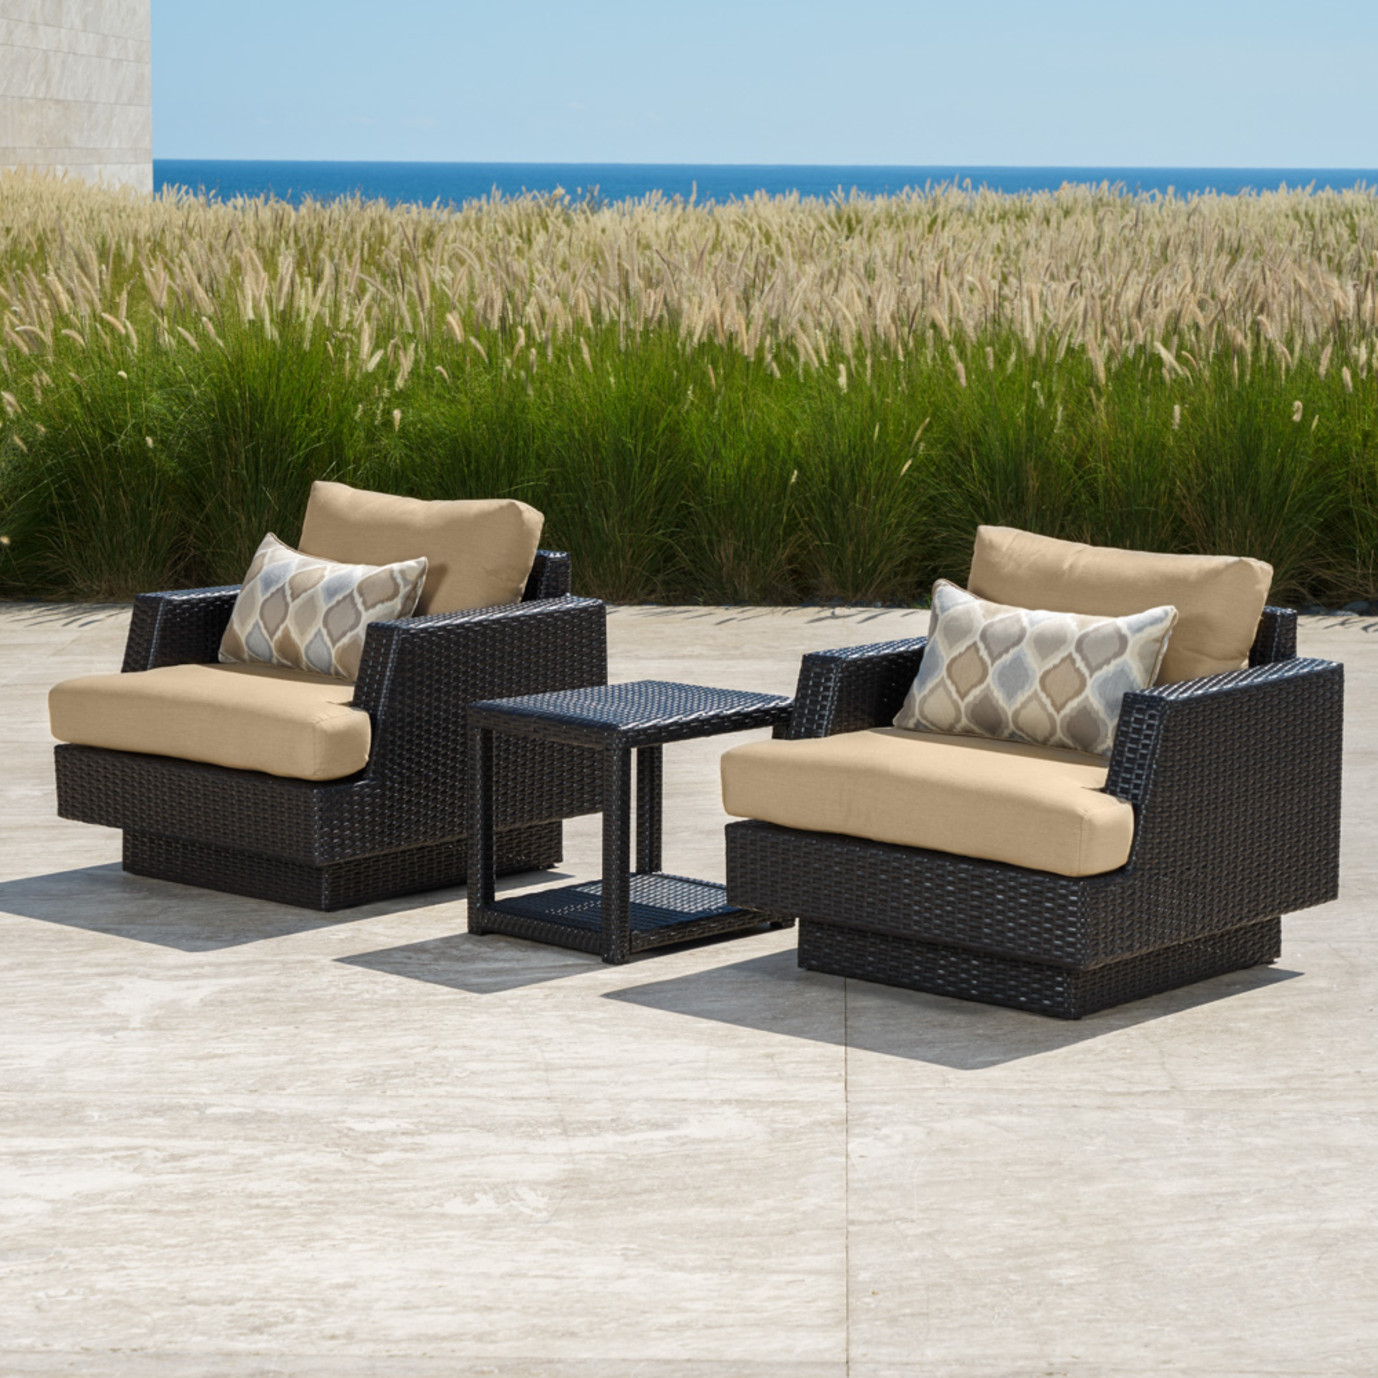 Portofino™ Comfort Club Chairs - Heather Beige